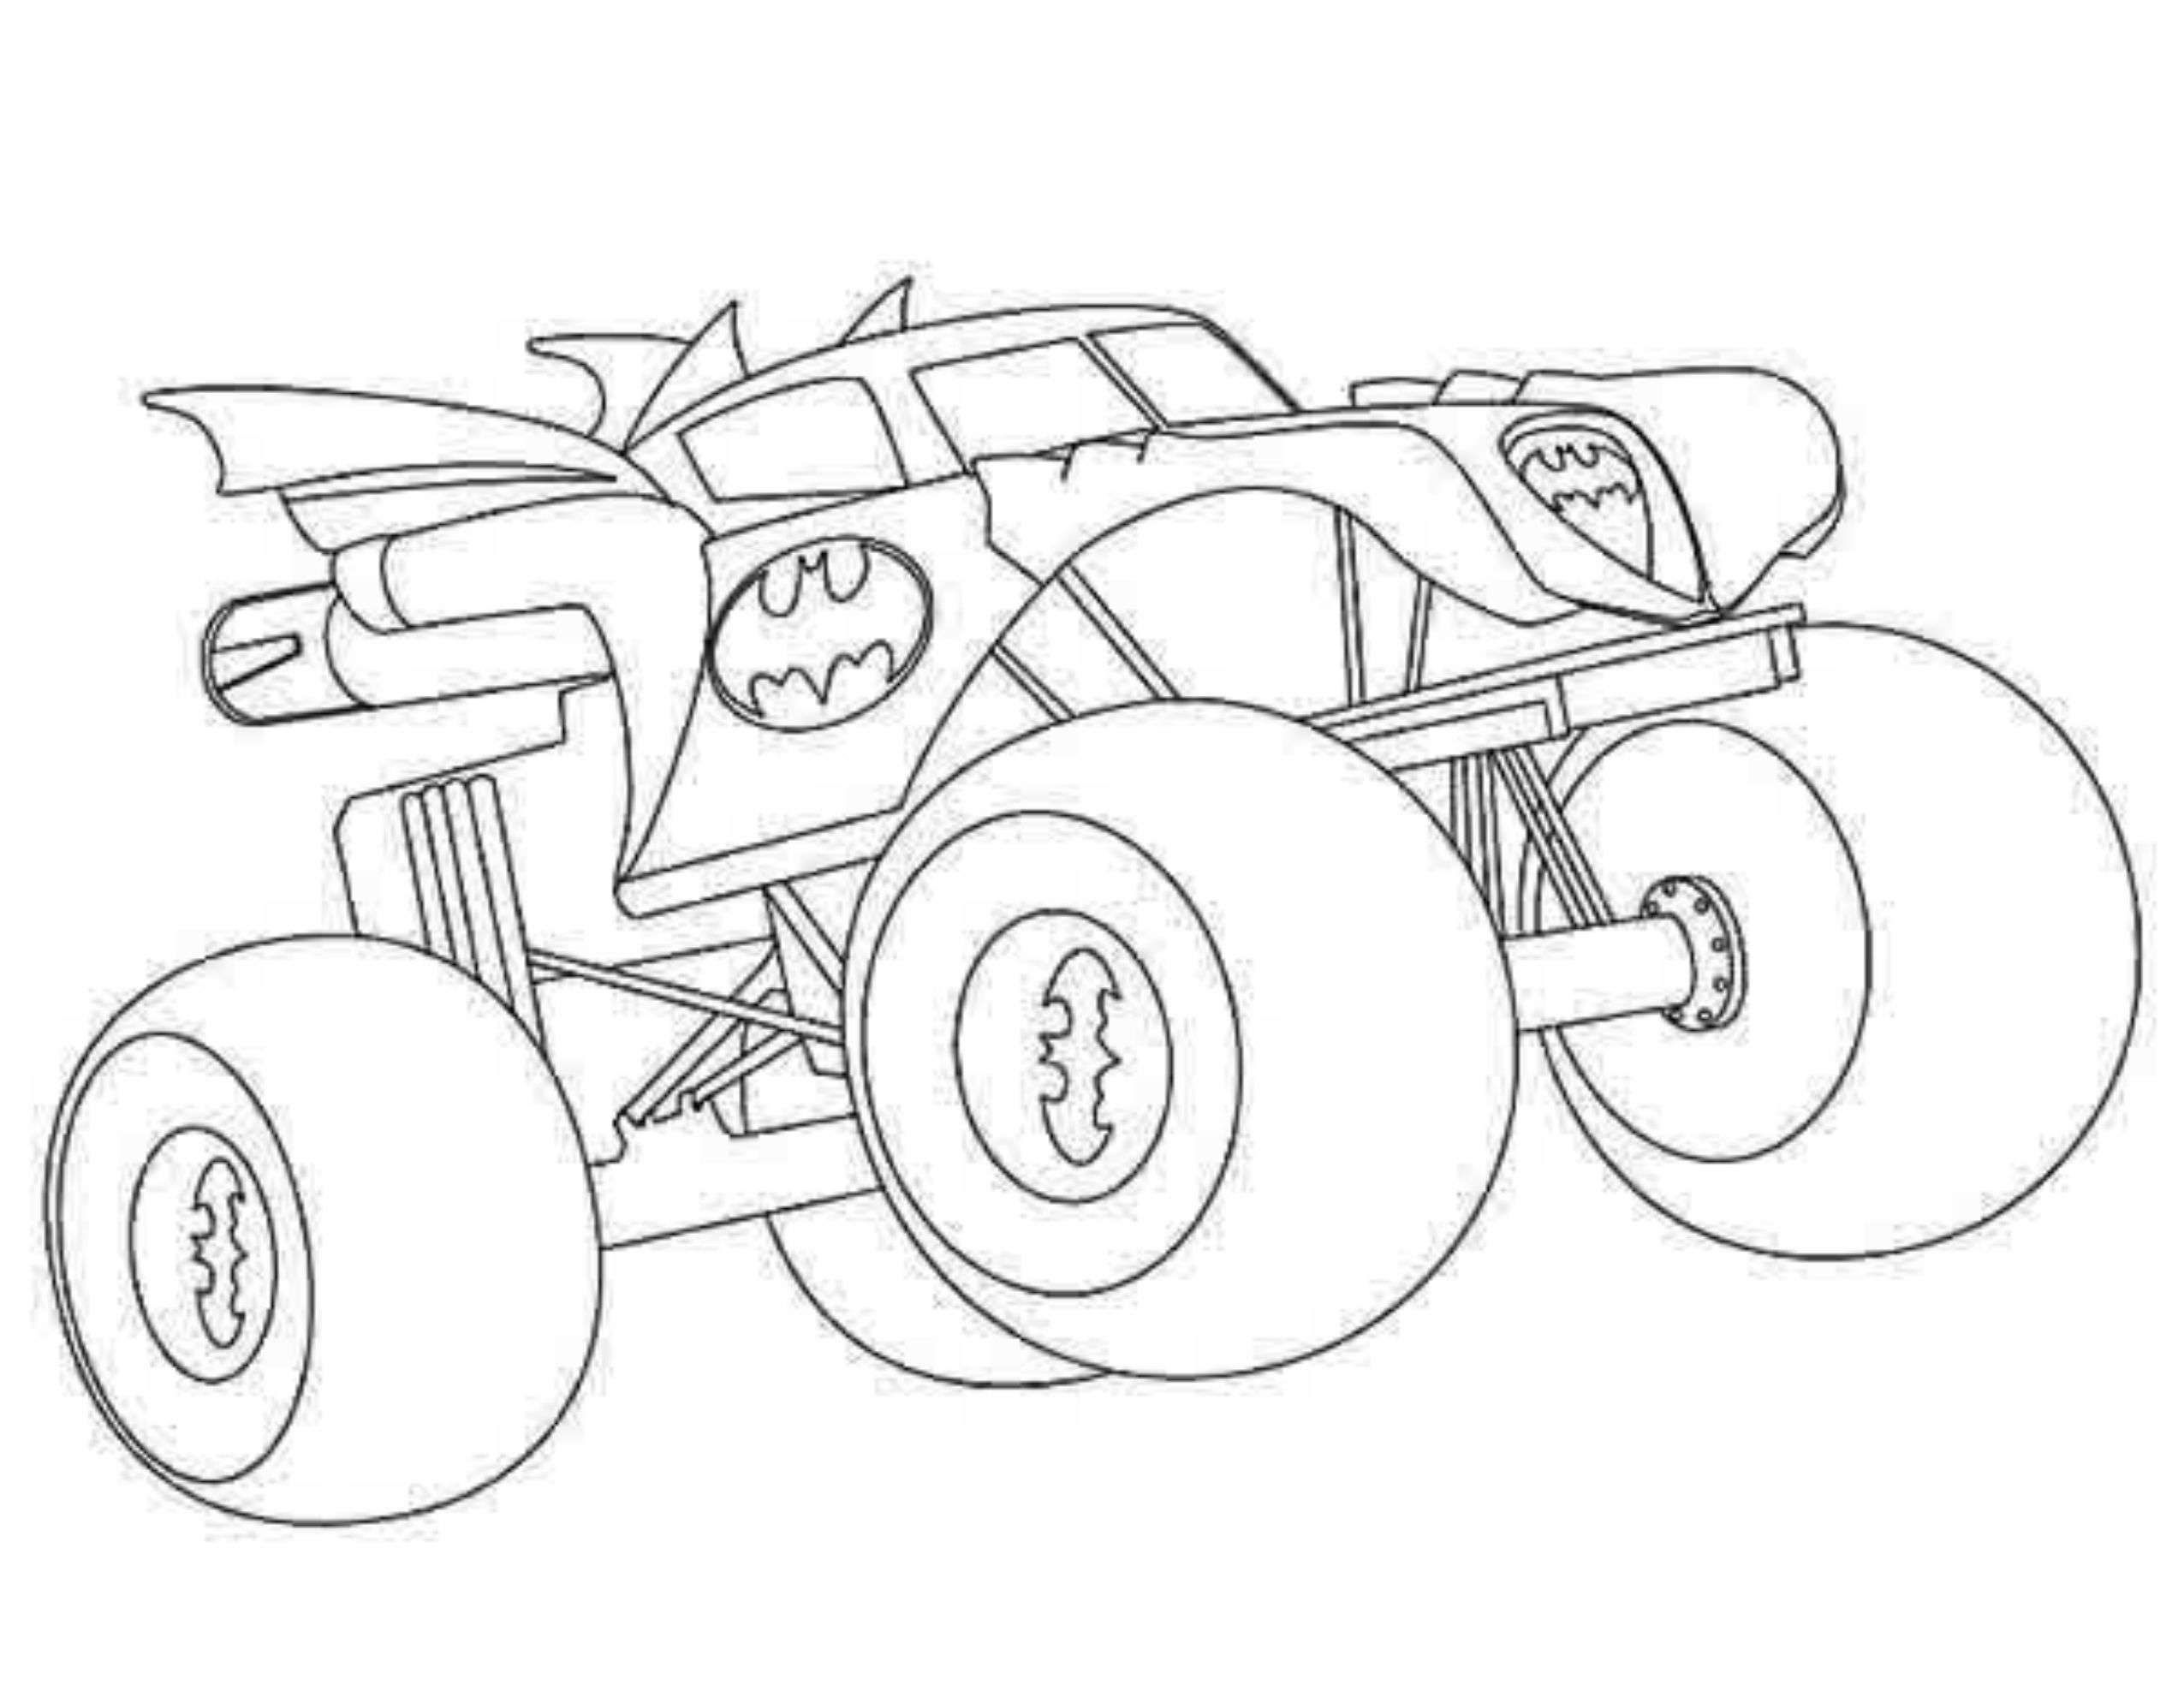 35+ Coloring pages for 5 year old boy ideas